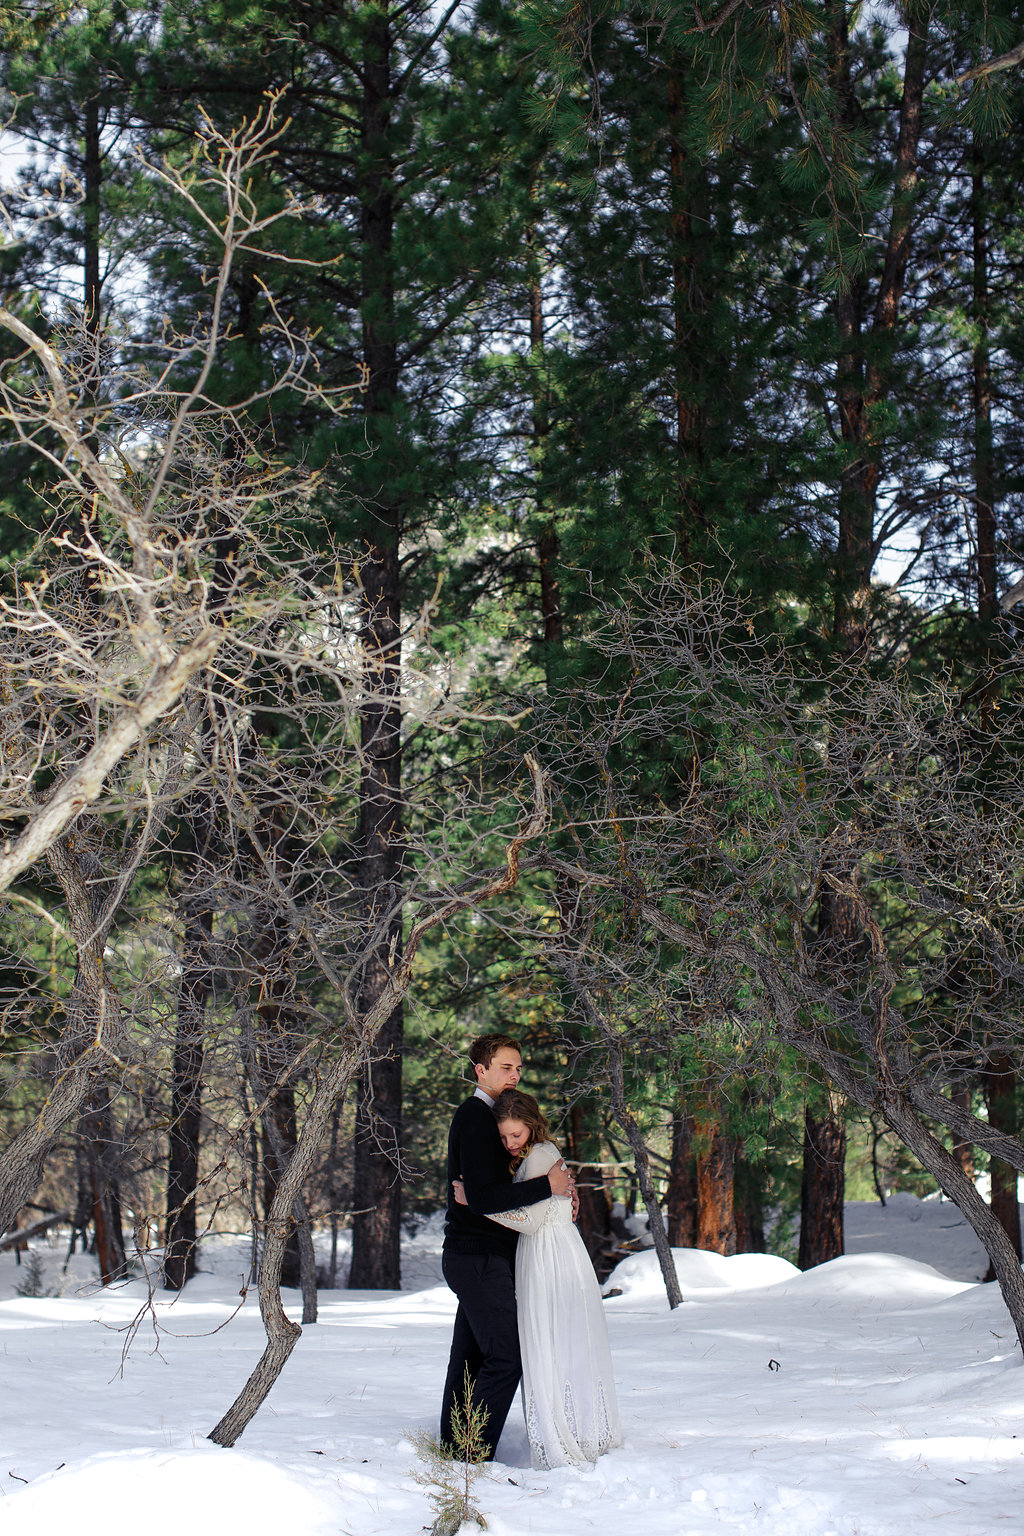 Forest snow mountains intimate pose photography wedding